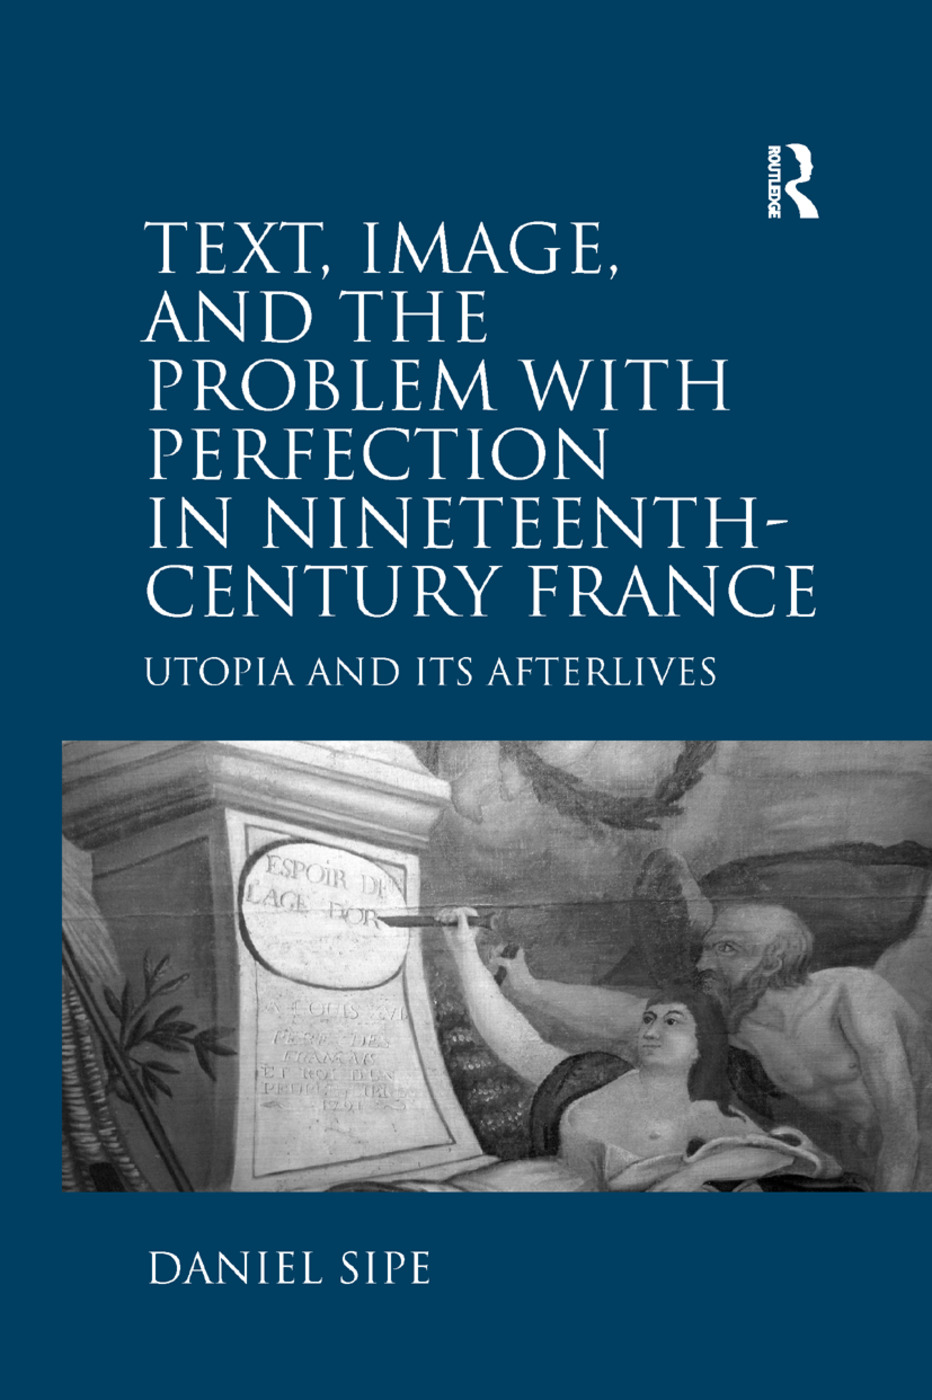 Text, Image, and the Problem with Perfection in Nineteenth-Century France